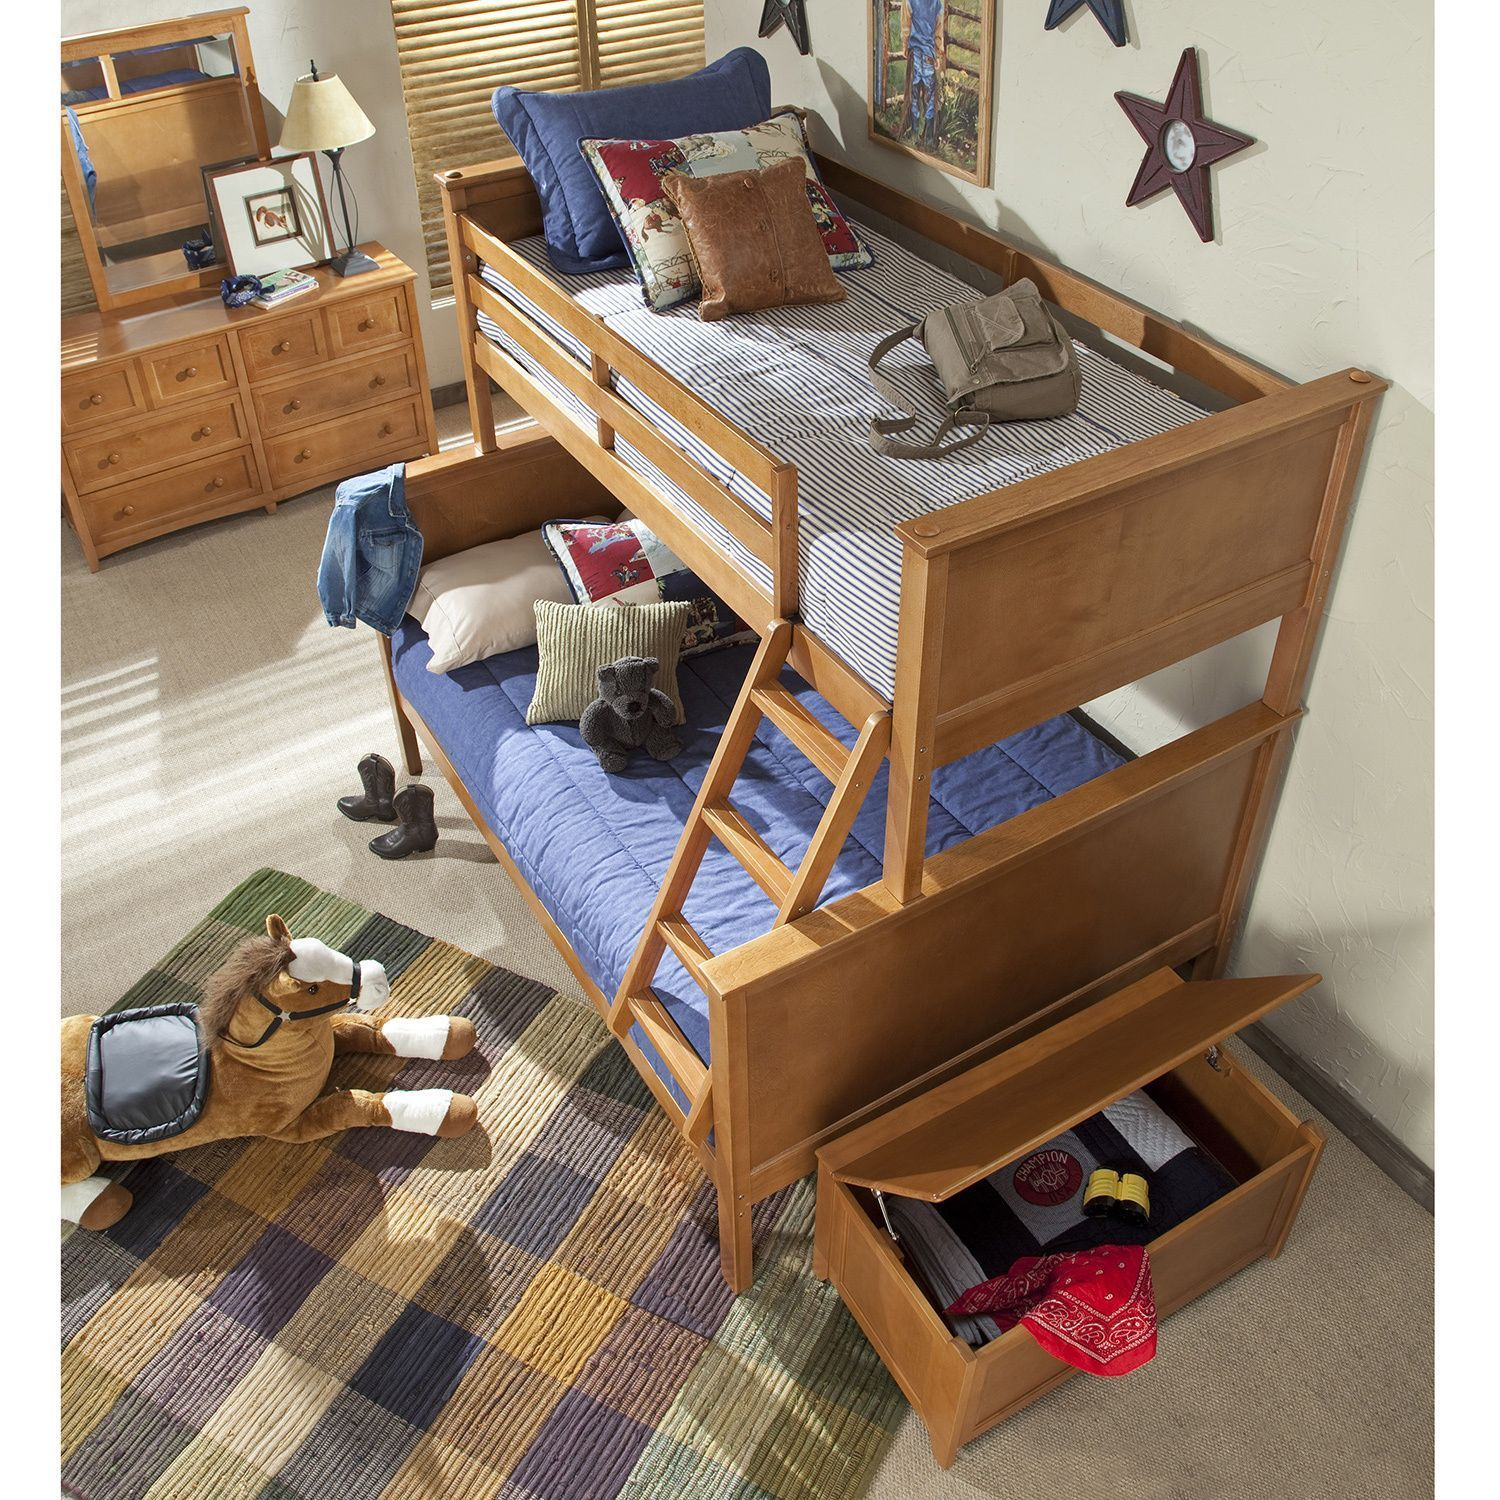 Toddler loft bed ideas  NE Kids School House uCaseyu Pecan Twin and Full Bunk Bed TF Casey